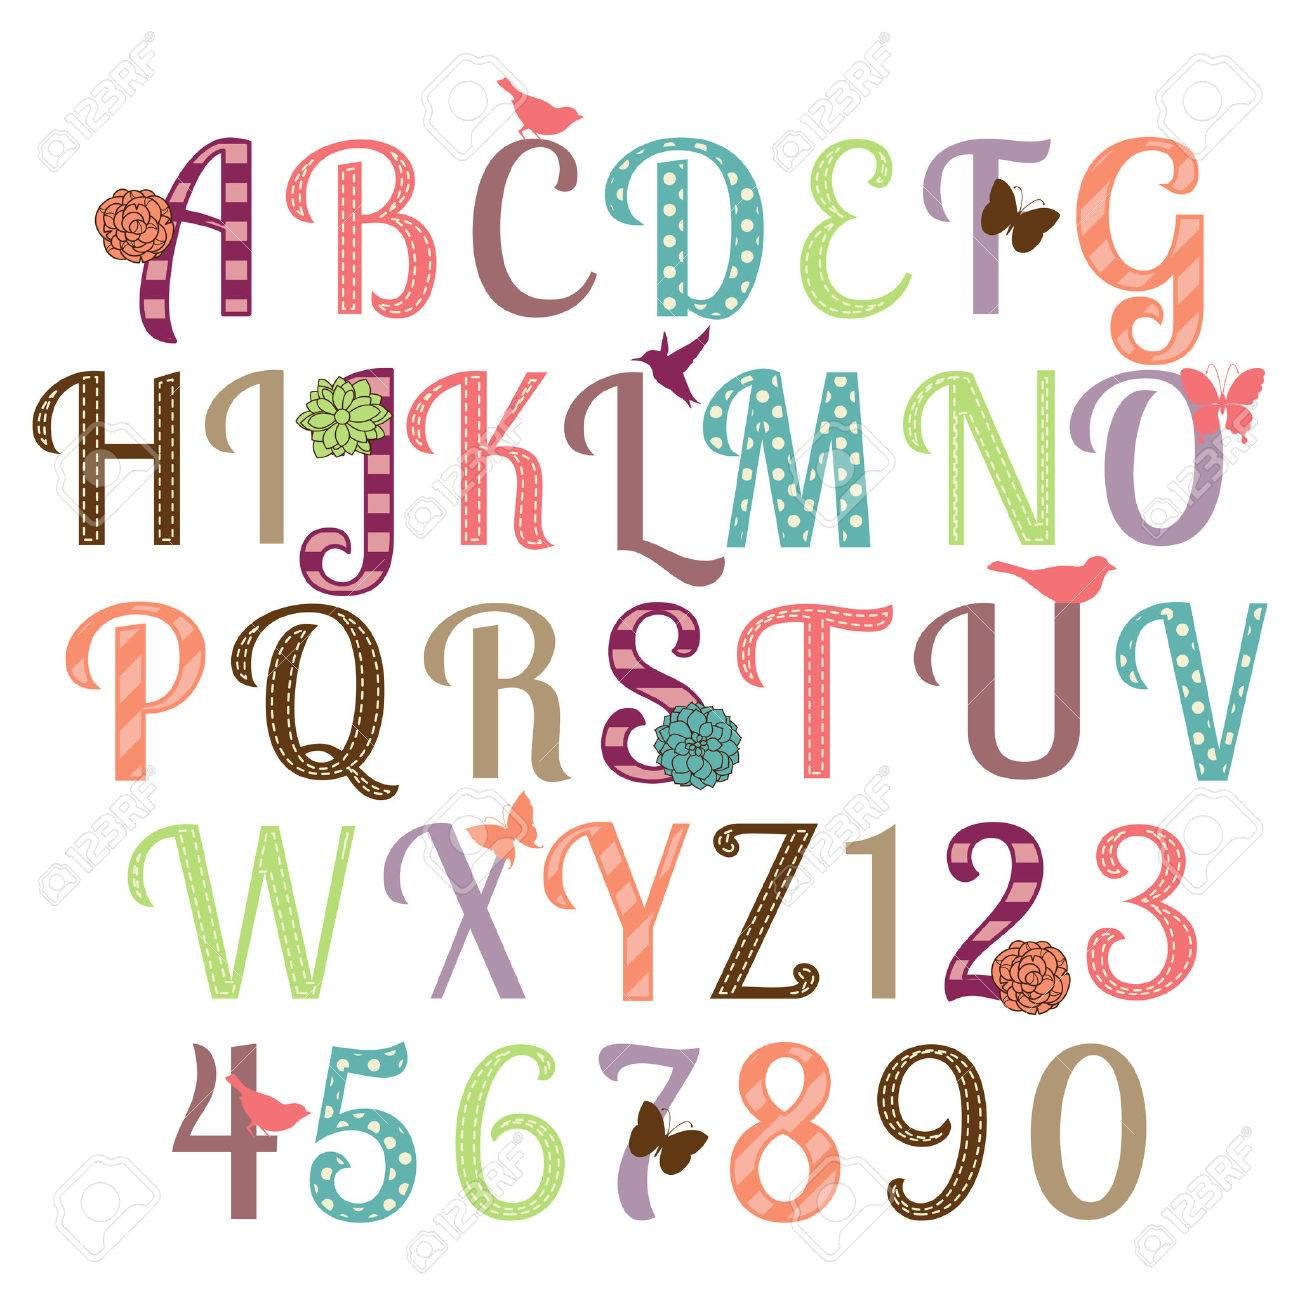 Girly Alphabet Vector Set Royalty Free Cliparts Vectors And Stock